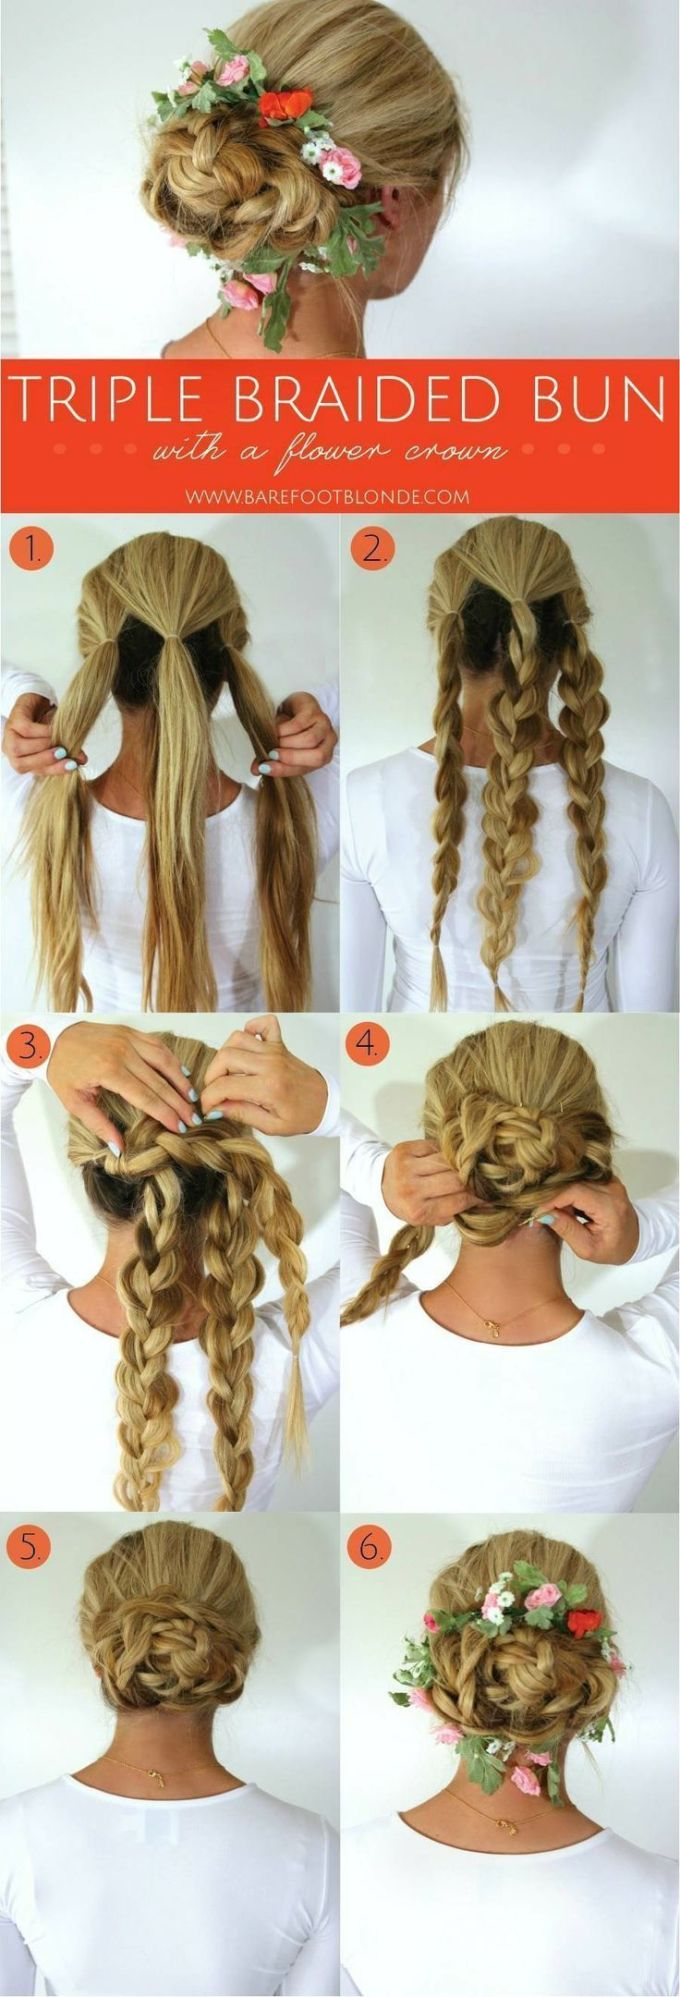 hairstyles to rock for prom - outfit ideas hq